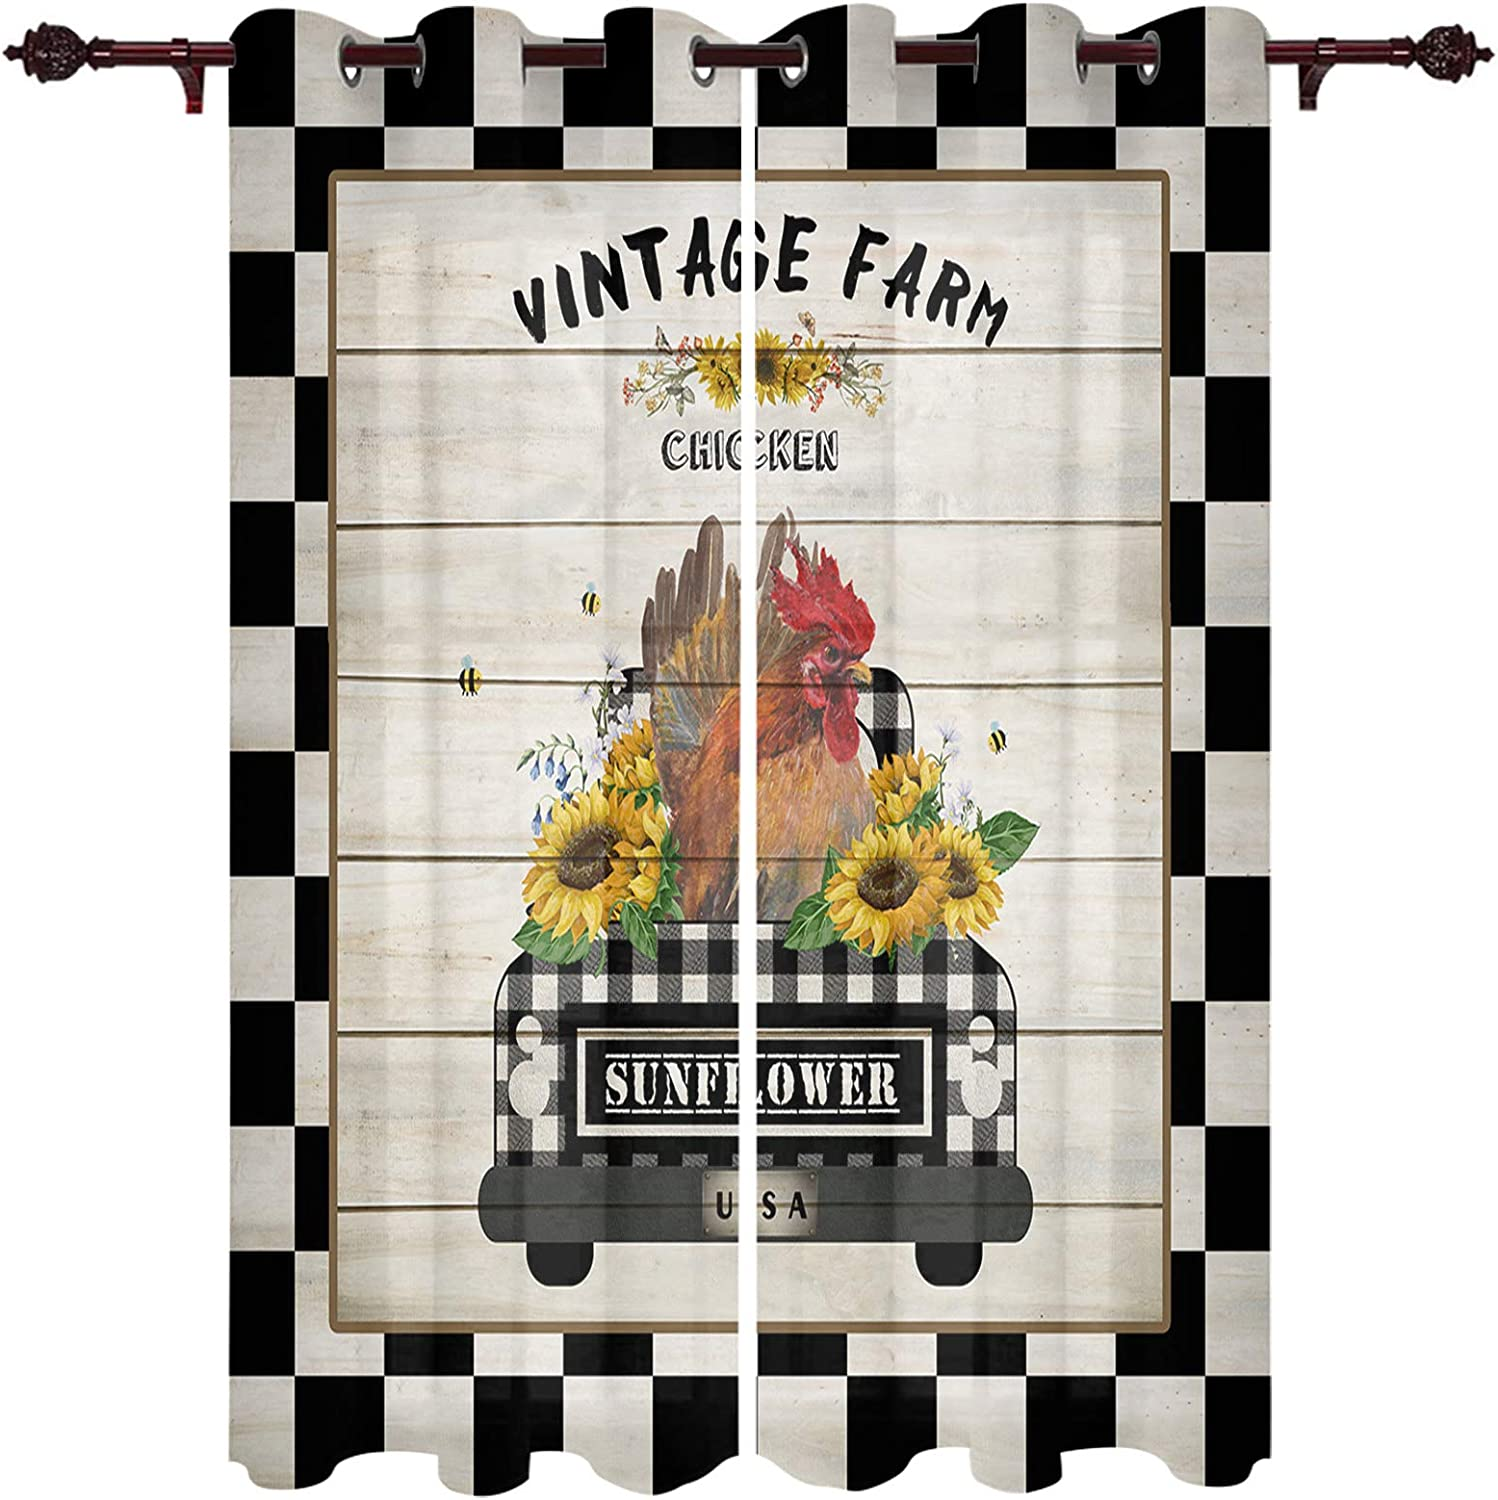 Grommet Curtain Panel security Treatment Sunflower Easy-to-use Chicken Vintage Farm